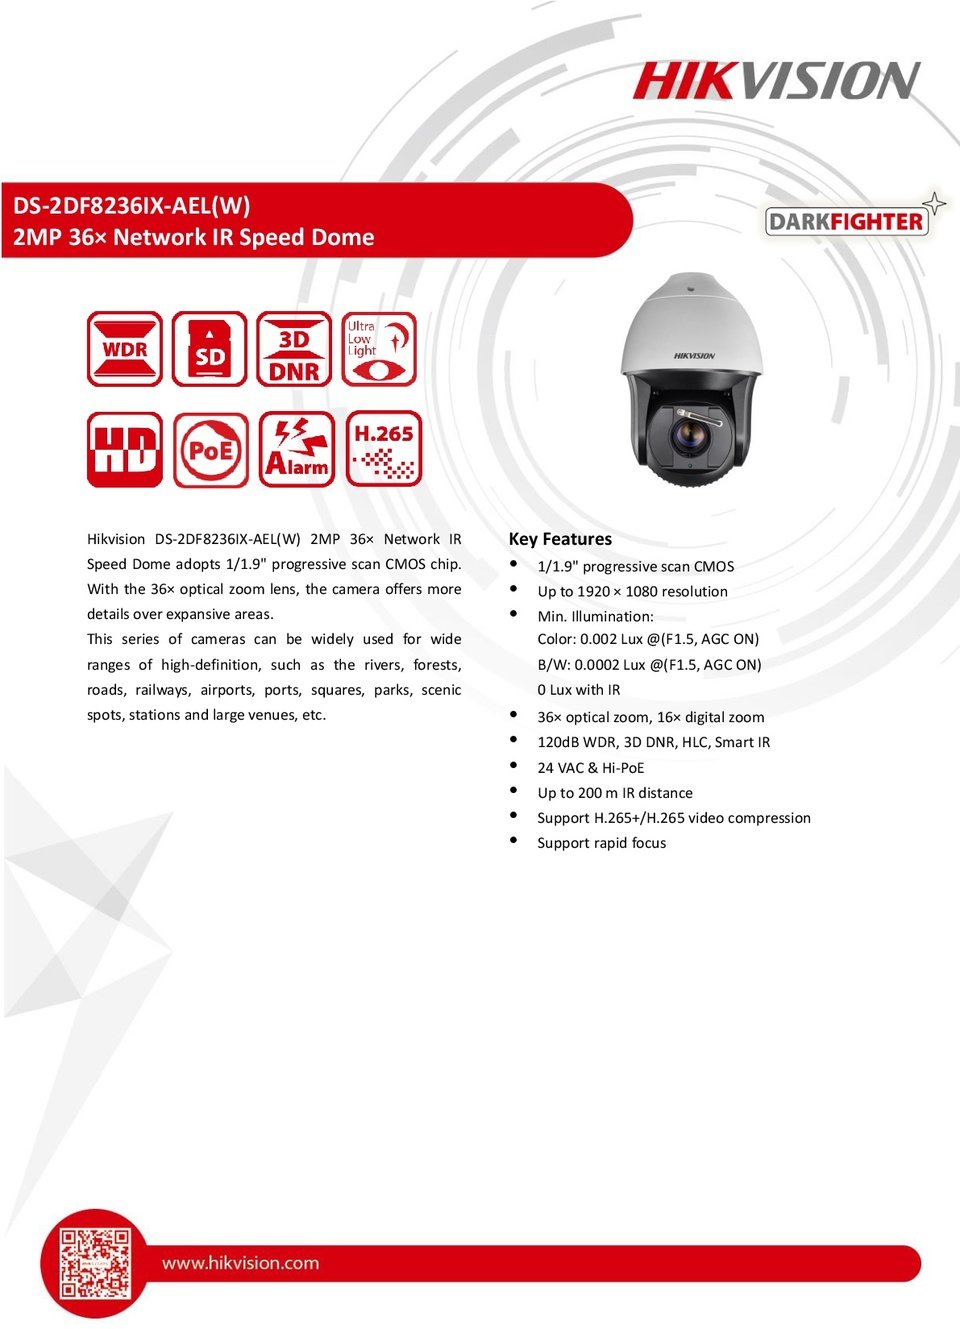 Hikvision DS-2DF8236IX-AEL 2MP IP Darkfighter PTZ Camera with 36X Optical Zoom 0